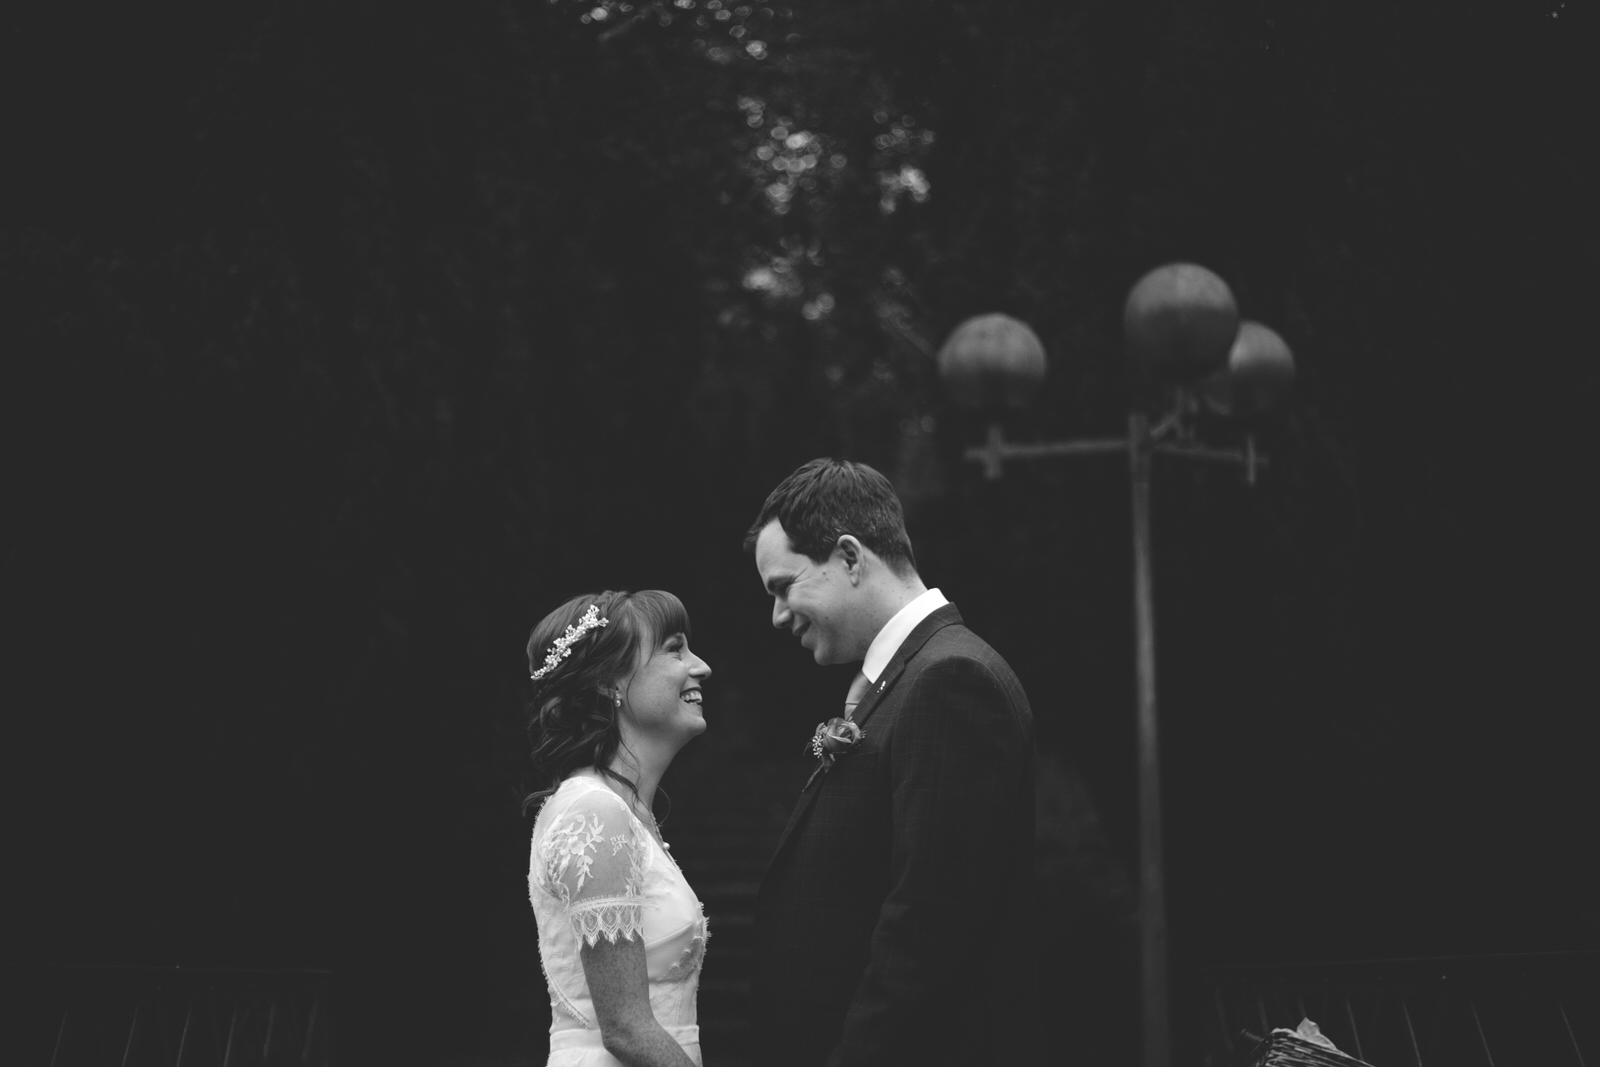 black and white wedding photography at Boyne Hill House